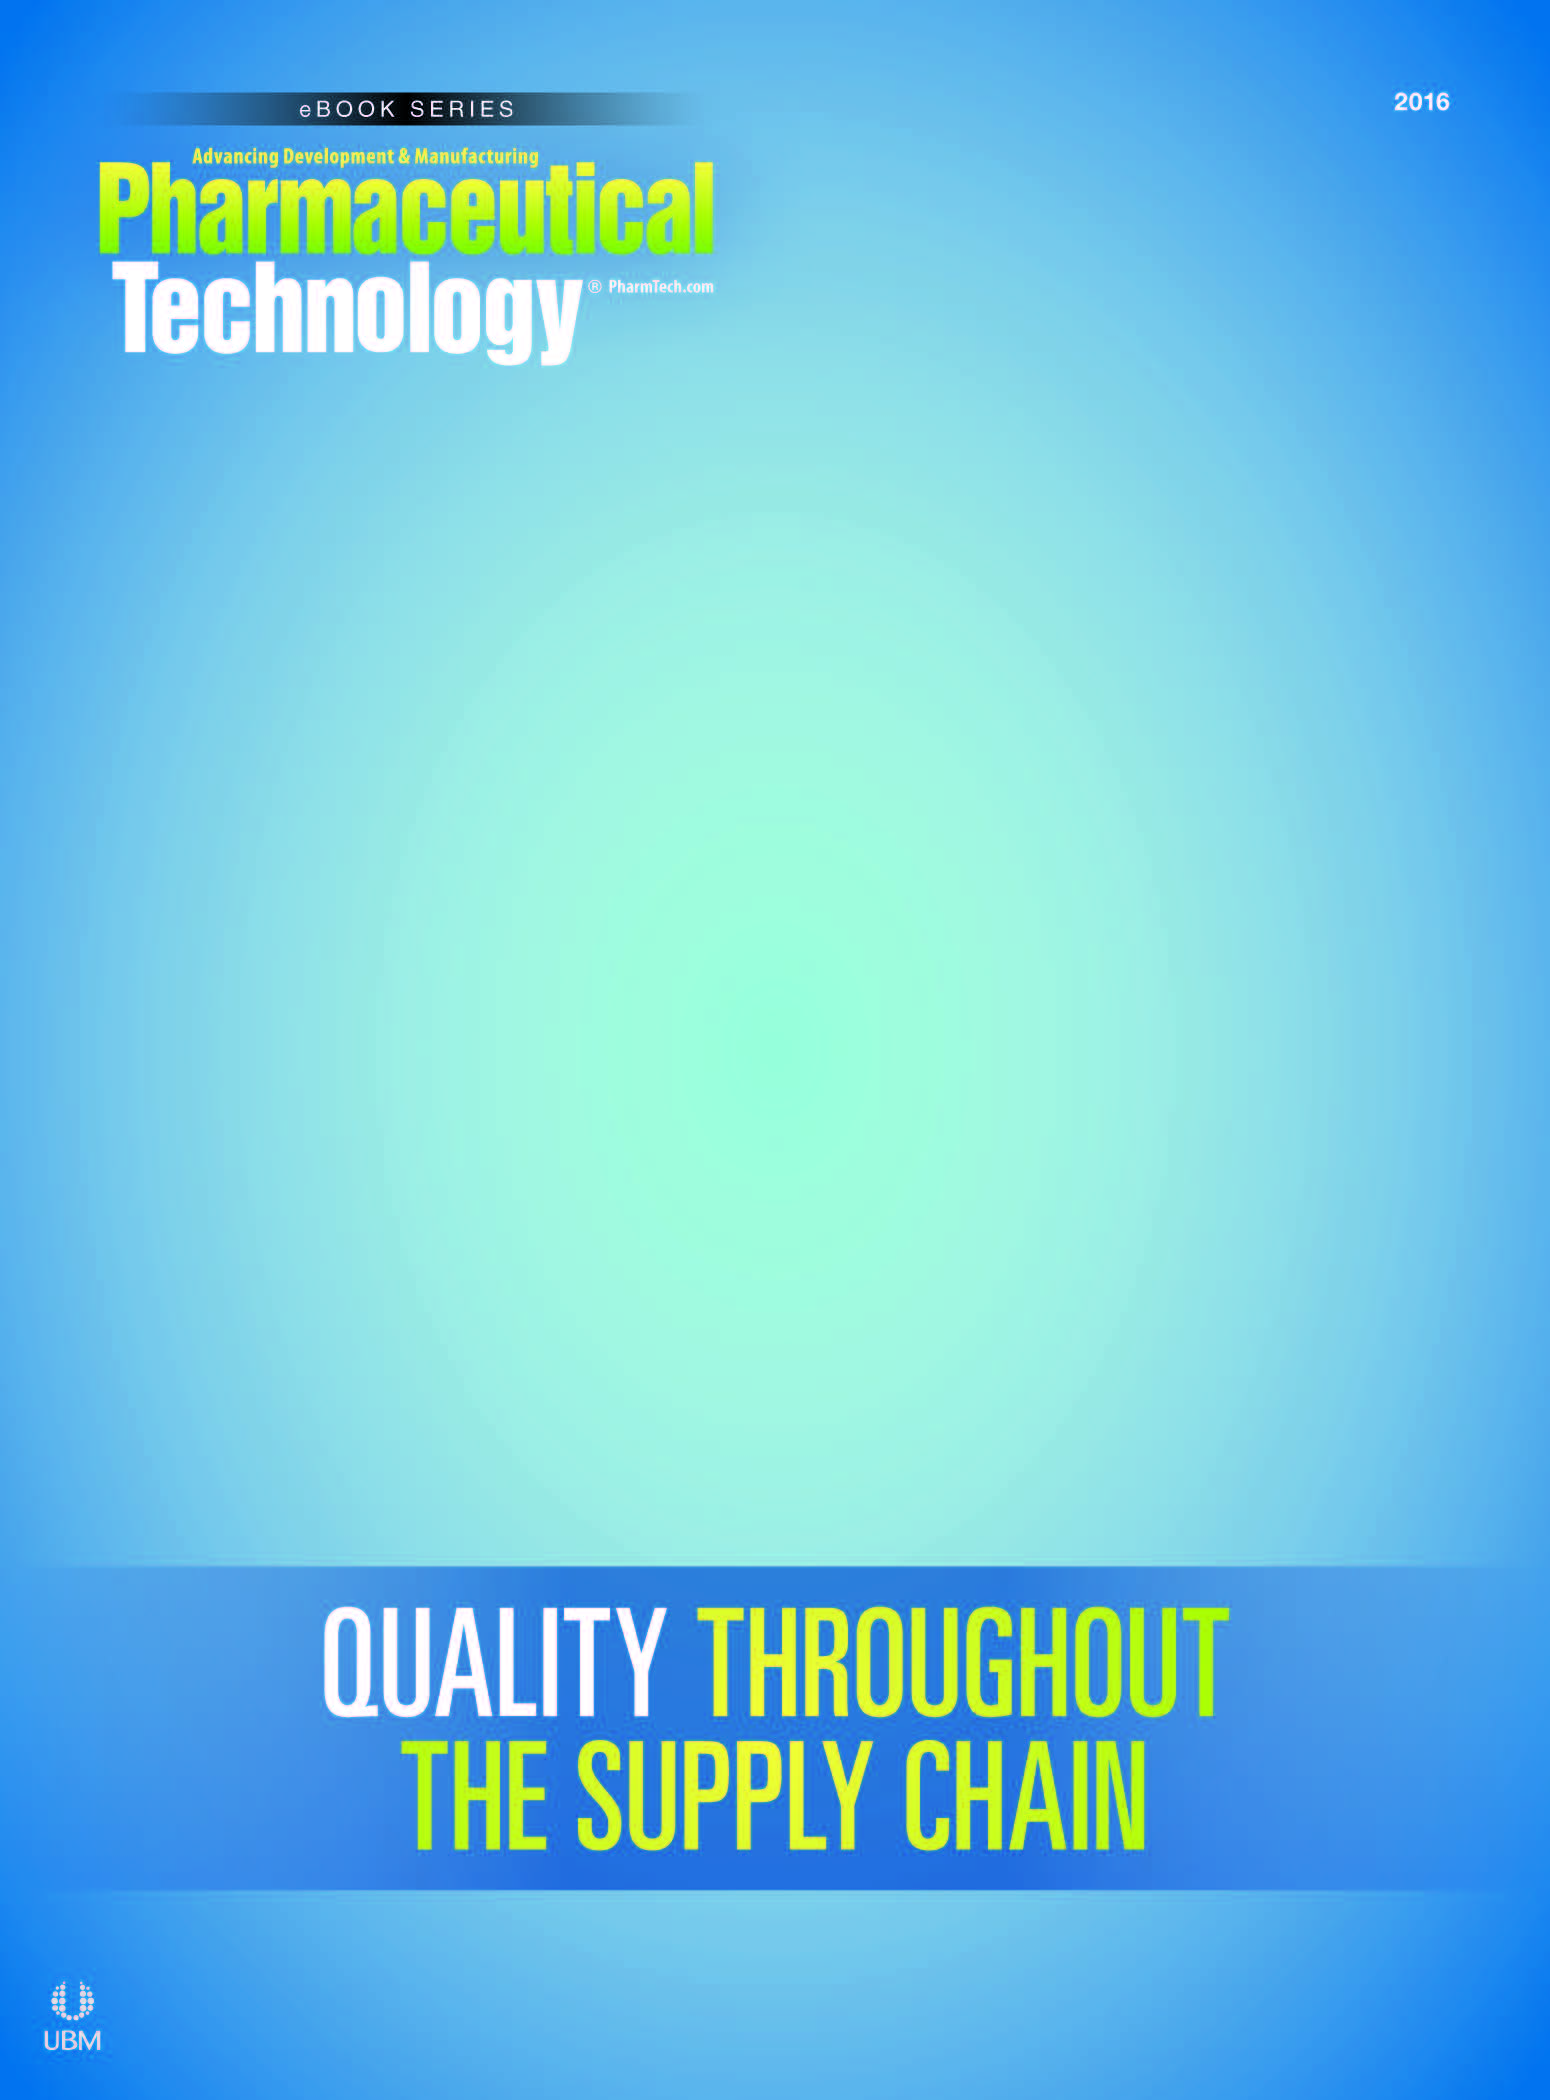 pharmaceutical-technology-ebook-quality-throughout-the-supply-chain_Page_01.jpg